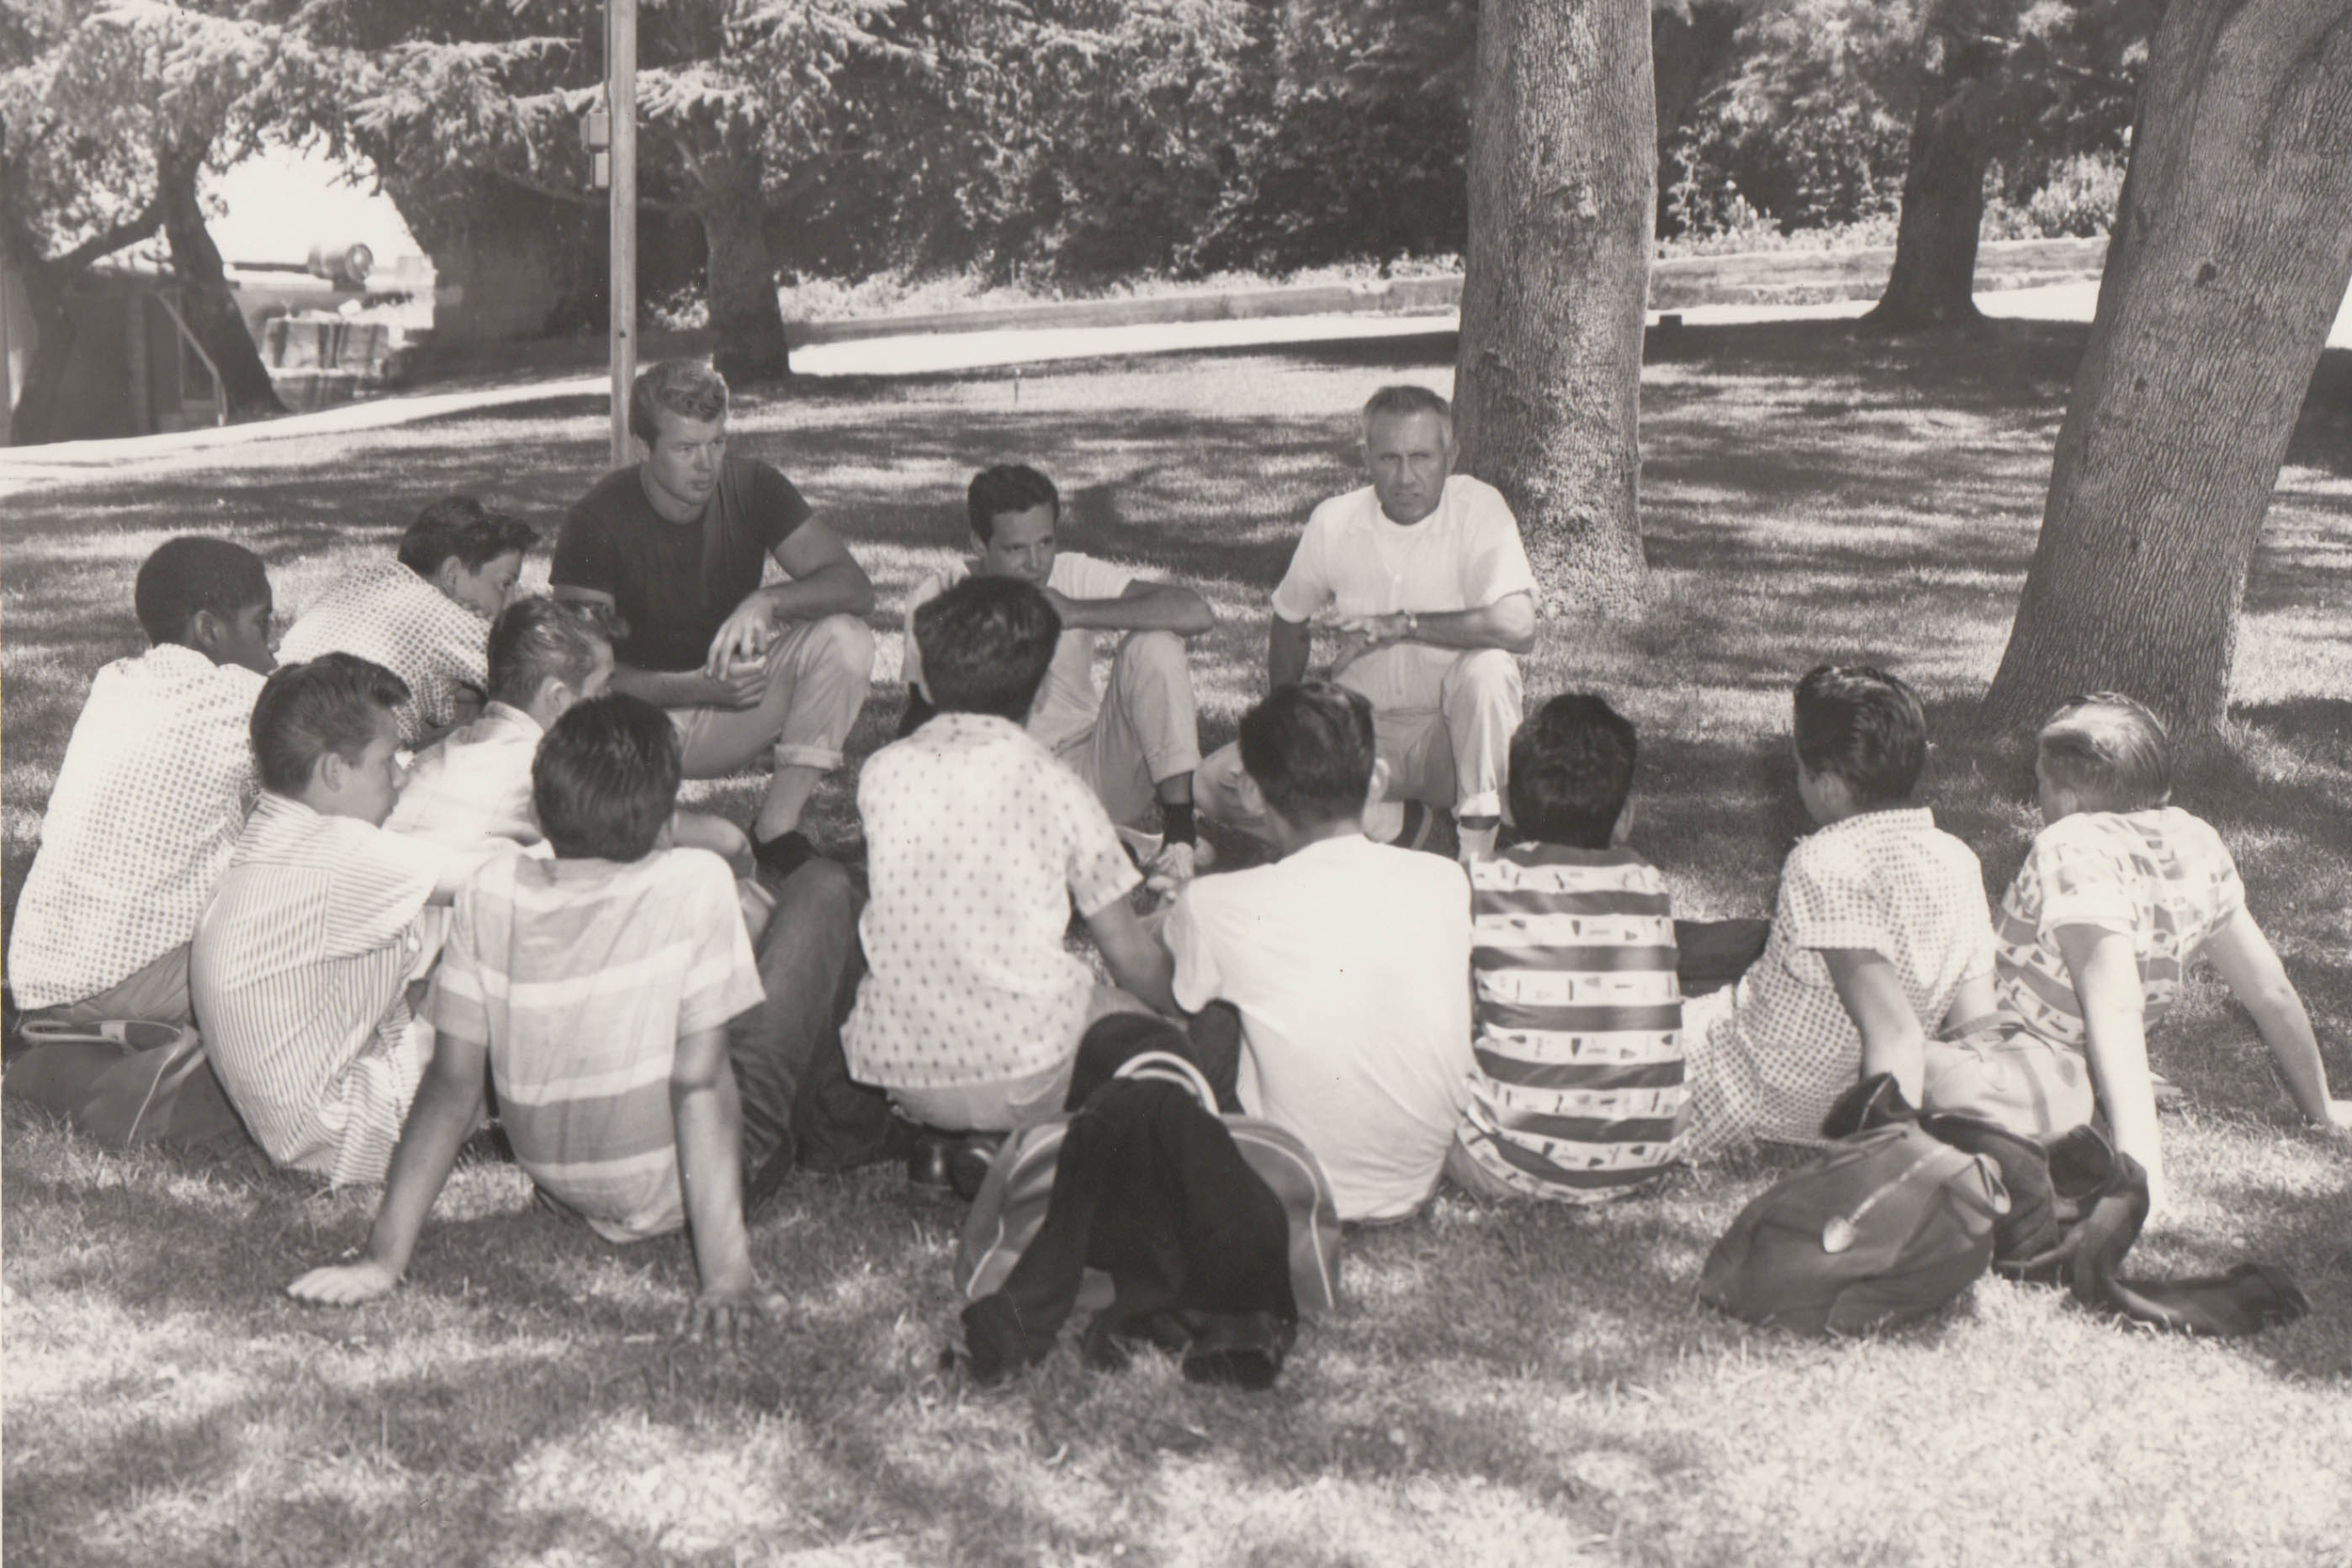 Louis Zamperini leads a group of boys in Bible study and prayer, 1955.